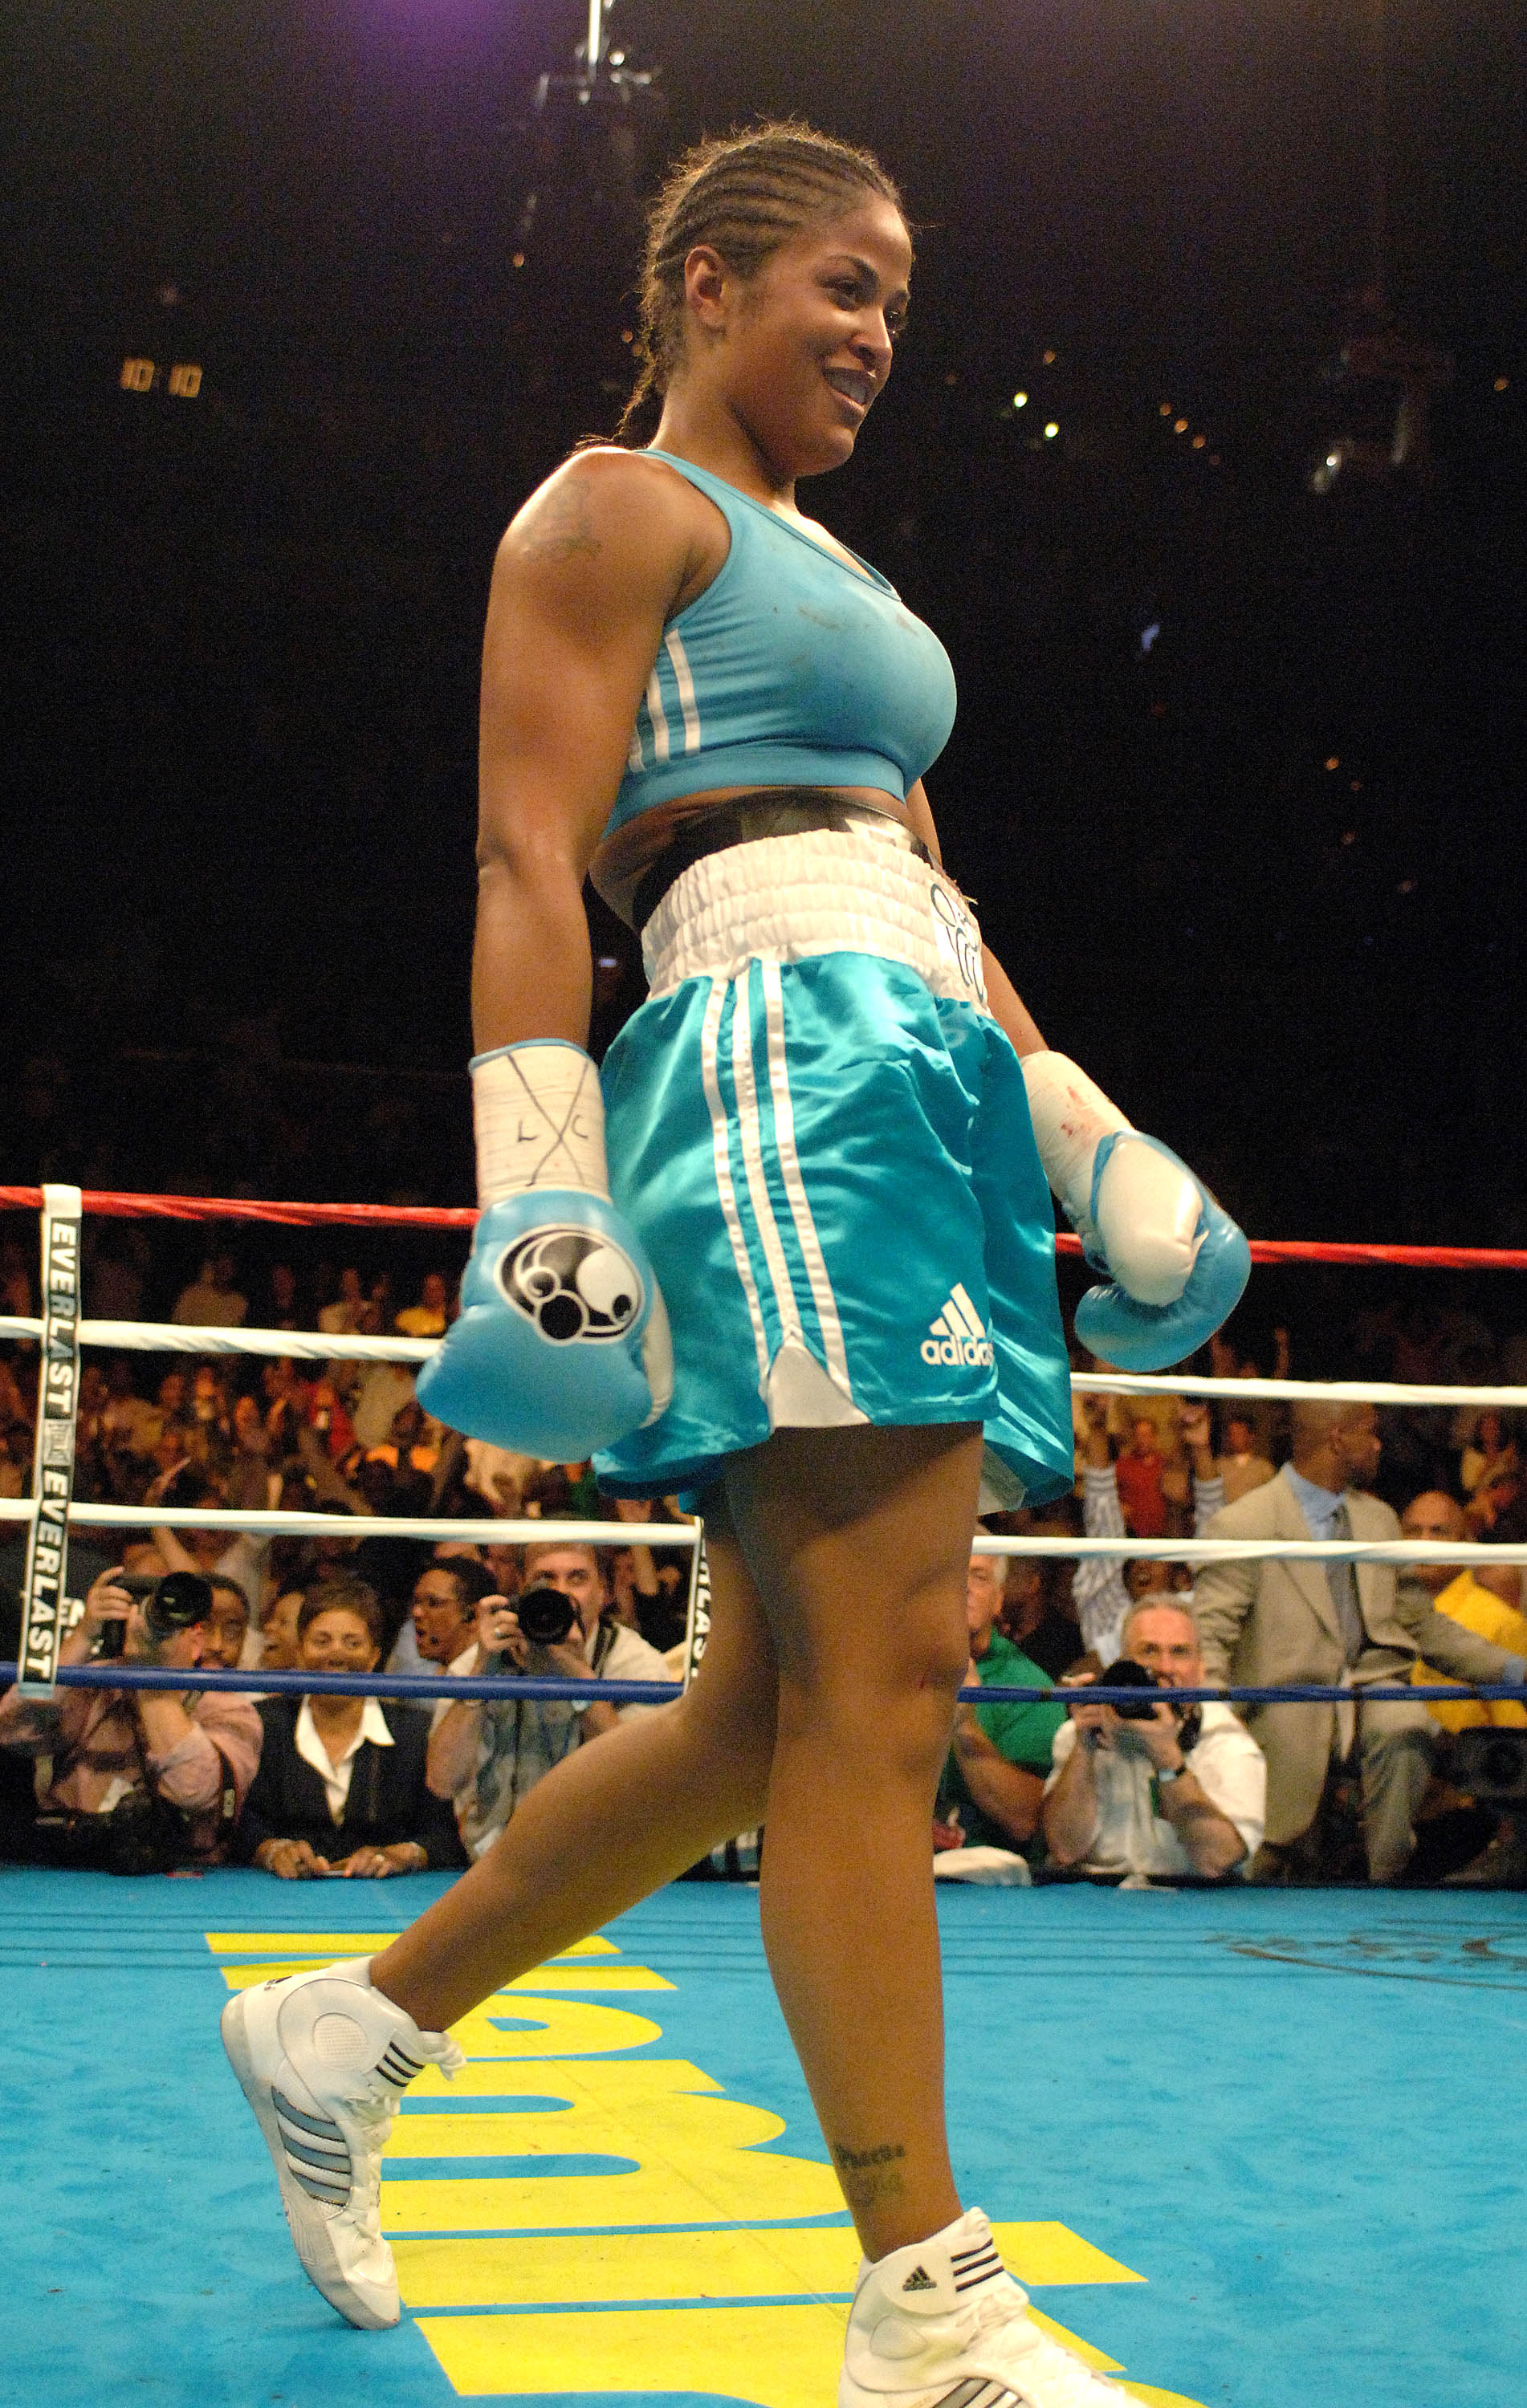 WASHINGTON - JUNE 11:  Laila Ali walks to her corner after stopping Erin Toughill in the 2nd round during their fight for the WBC and WIBA Super Middleweight championship at the MCI Center June 11, 2005 in Washington, DC. Laila Ali won the WBC and WIBA ti